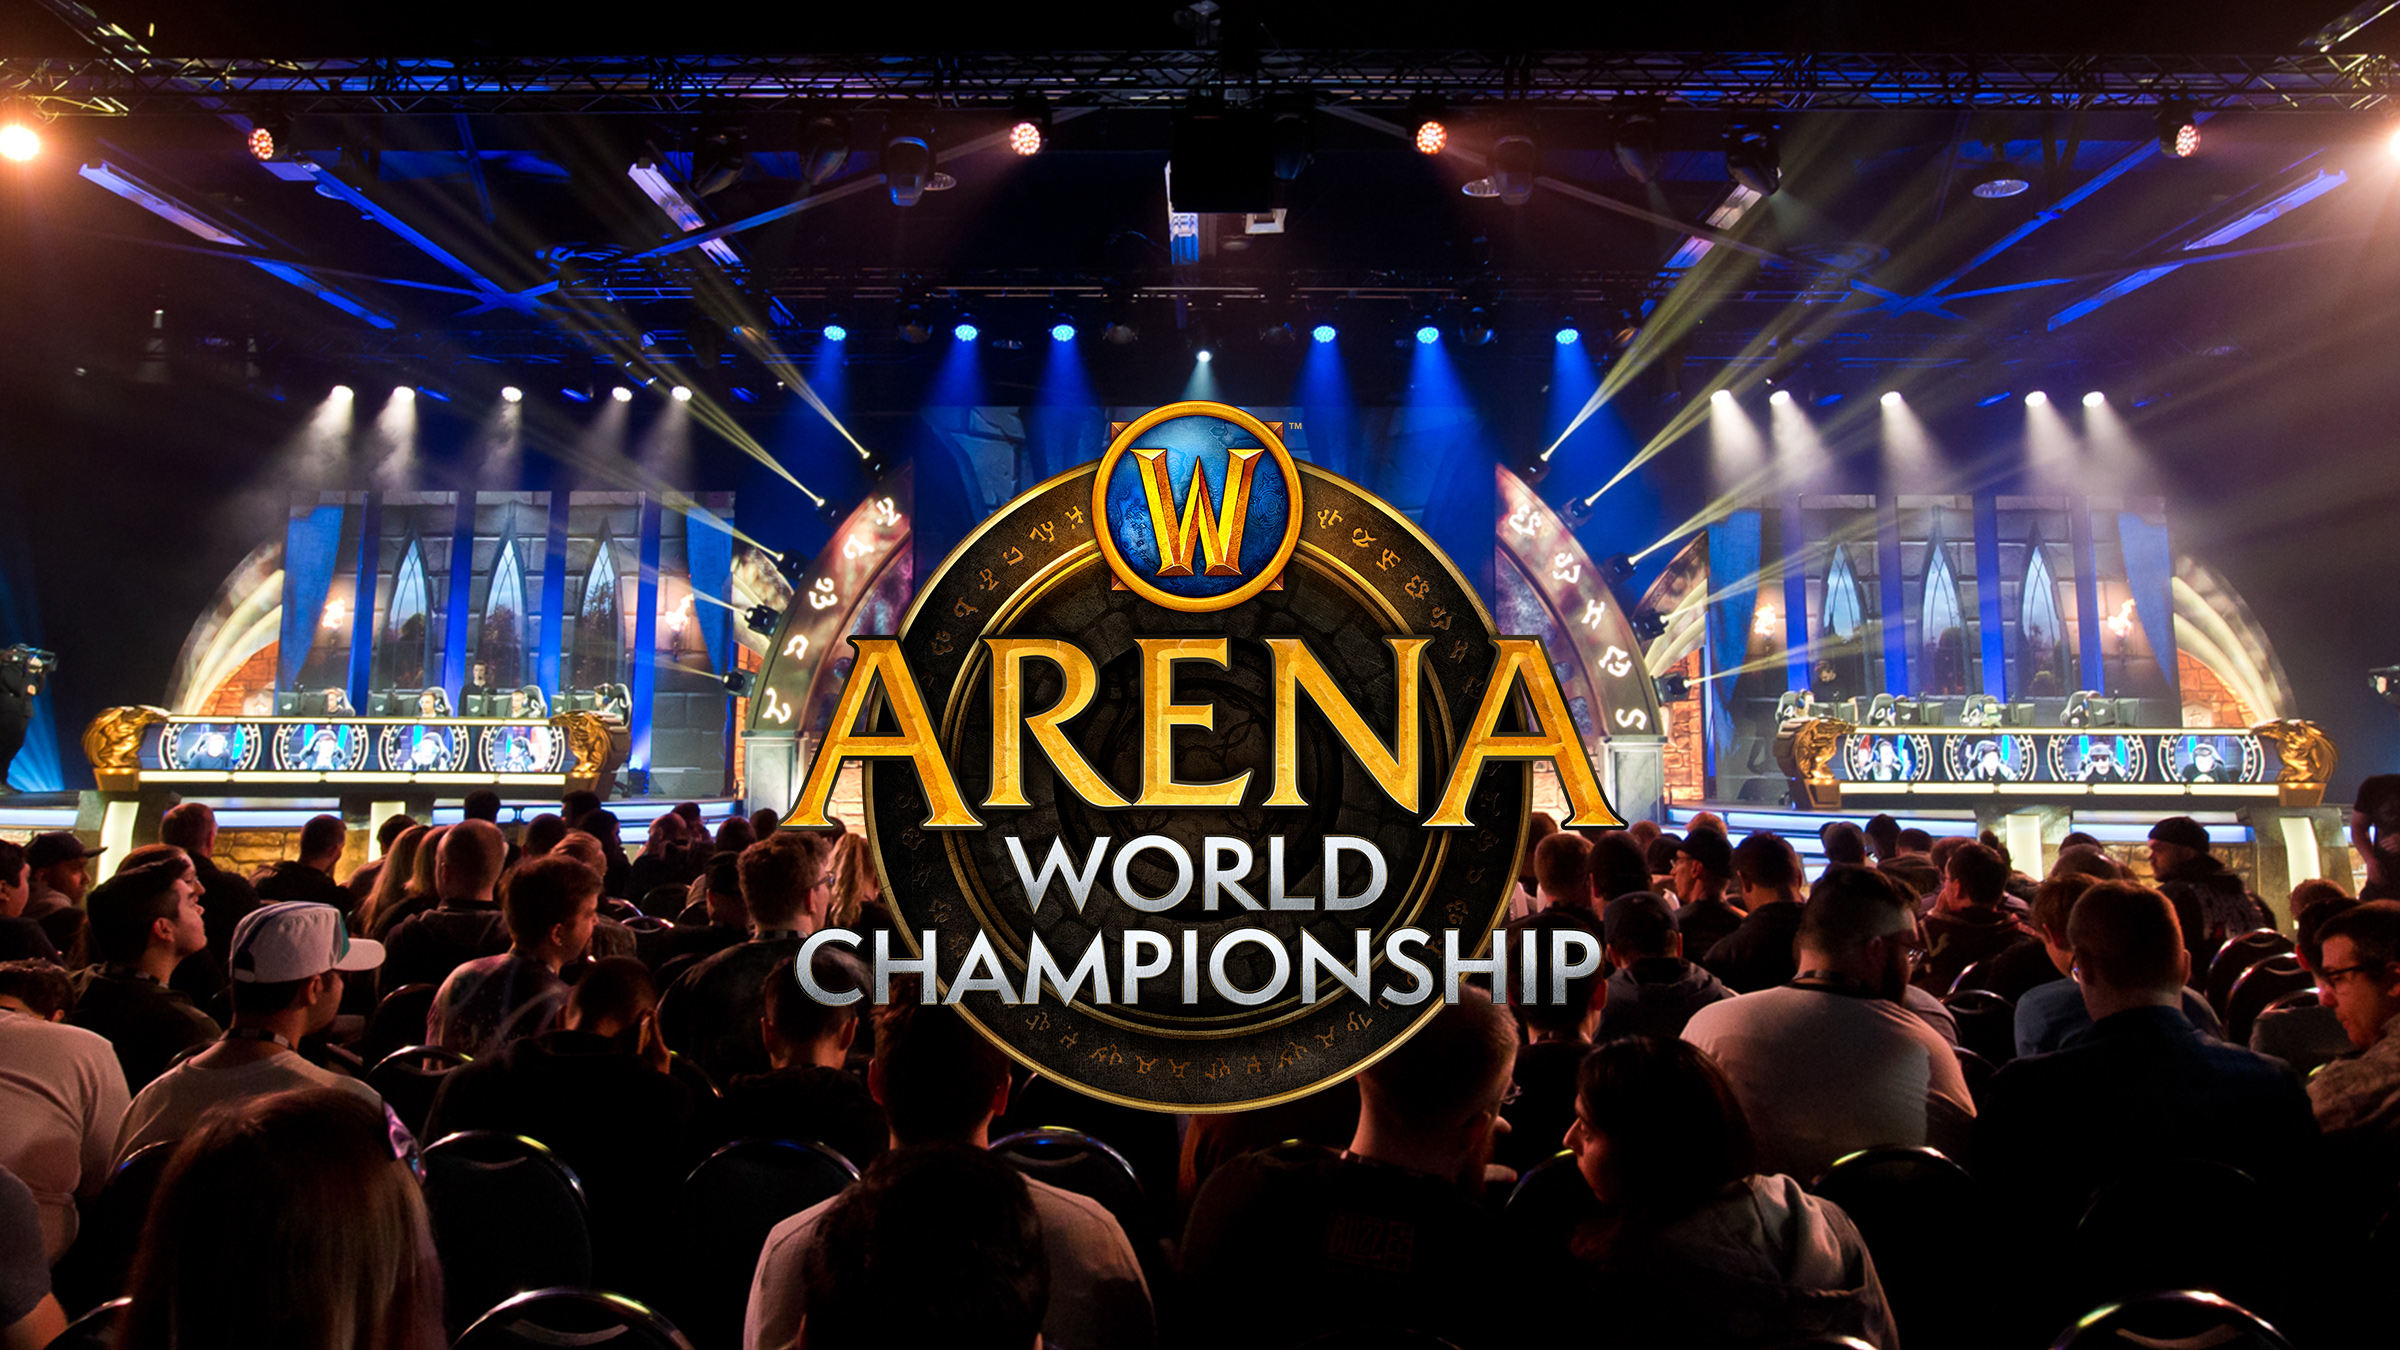 Mighty Mouse Does BlizzCon—and Arena World Championship